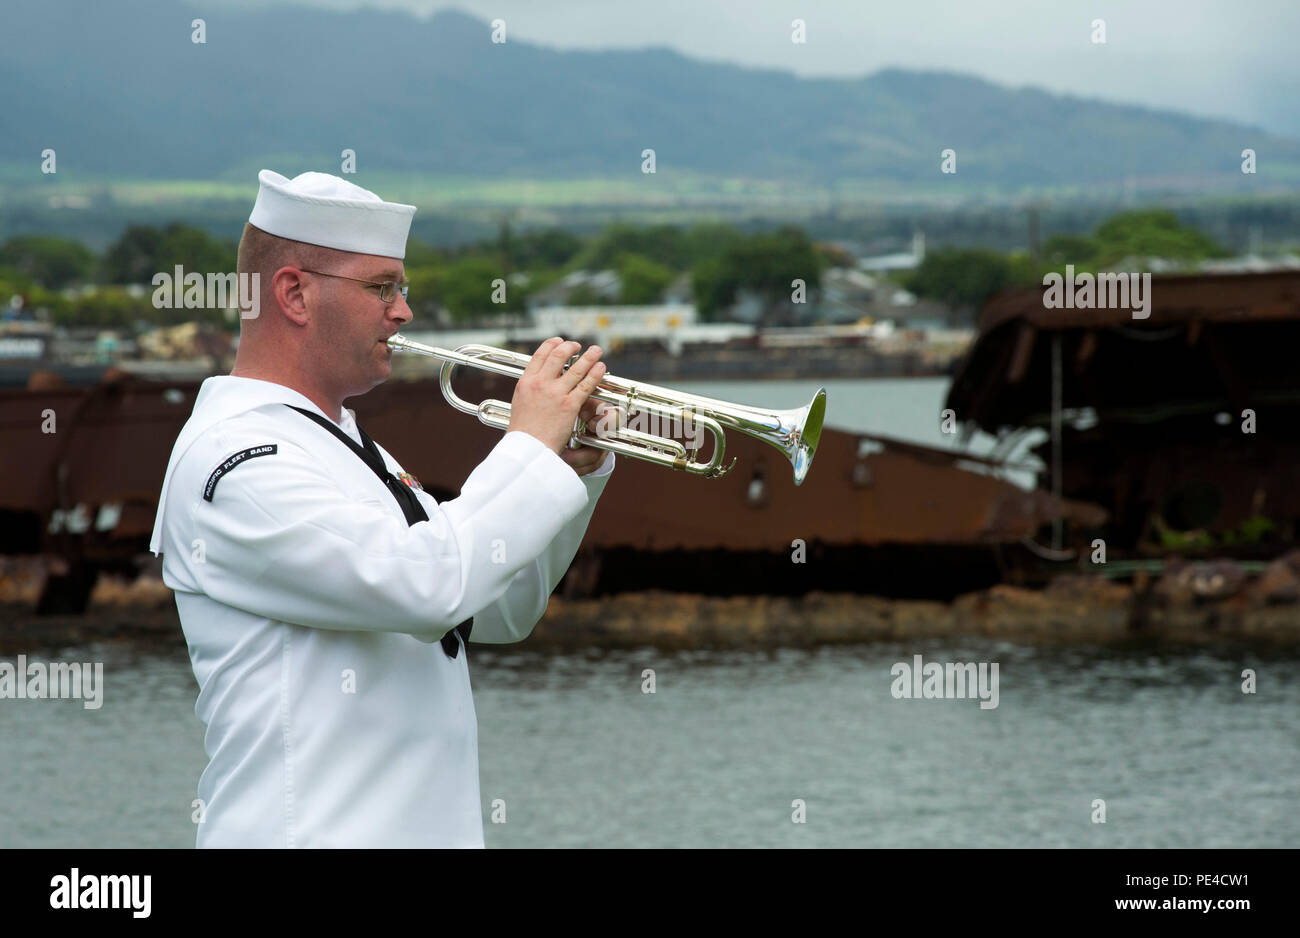 150909-N-GI544-046 PEARL HARBOR (Sept. 9, 2015) Musician 1st Class Peter Sutorius, assigned to Pacific Fleet Band, plays taps during an ash-scattering ceremony for the late Pearl Harbor survivor U.S. Navy Chief Petty Officer Daryl L. Finch at the USS Utah Memorial on Ford Island, Joint Base Pearl Harbor-Hickam. Finch was serving on Ford Island during the 1941 Japanese attacks on Pearl Harbor. His ashes joined the remains of Sailors still aboard USS Utah, which was sunk during the 1941 attack. (U.S. Navy photo by Mass Communication Specialist 2nd Class Laurie Dexter/Released) Stock Photo